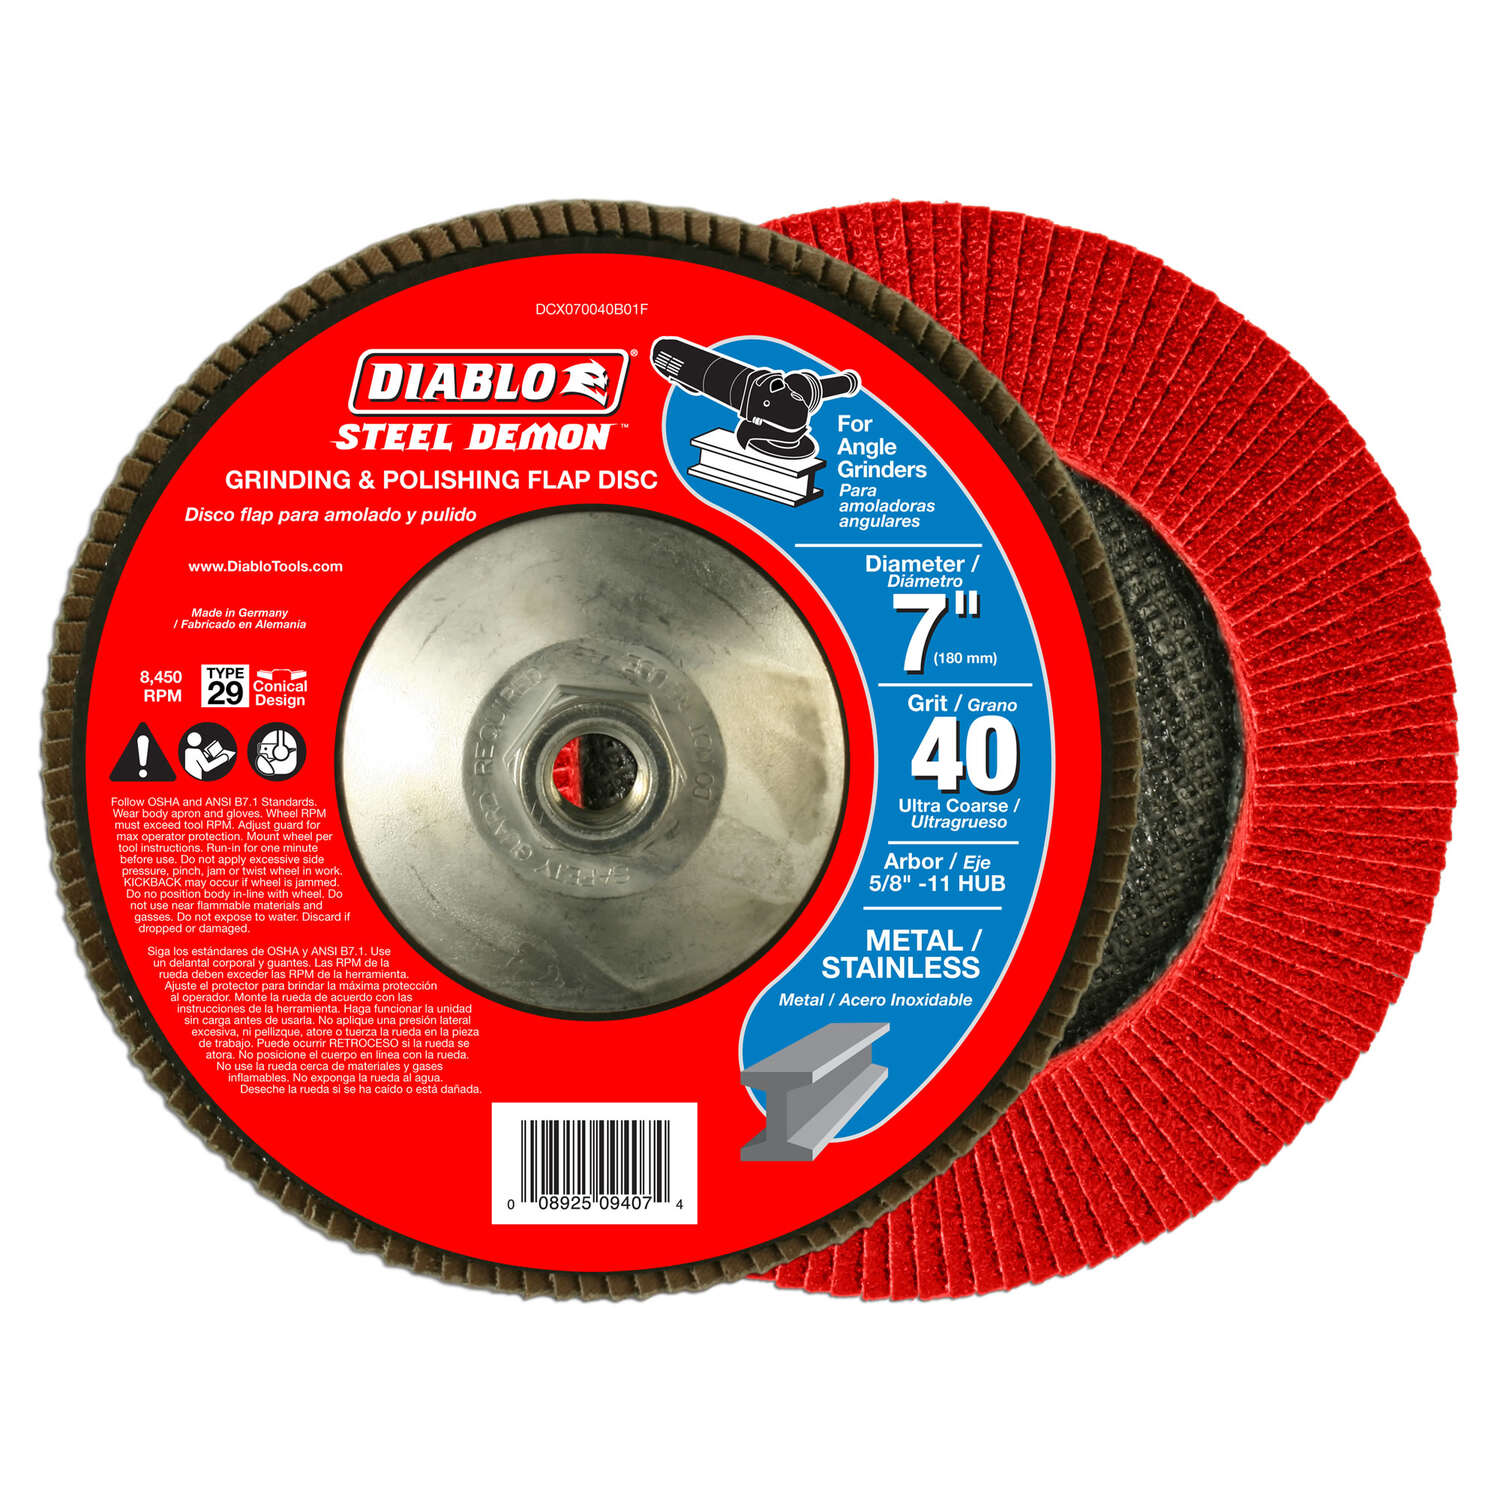 Diablo Steel Demon 7 in. Premium Zirconium Blend Bolt-On Flap Disc 40 Grit Ultra Coarse 1 pk